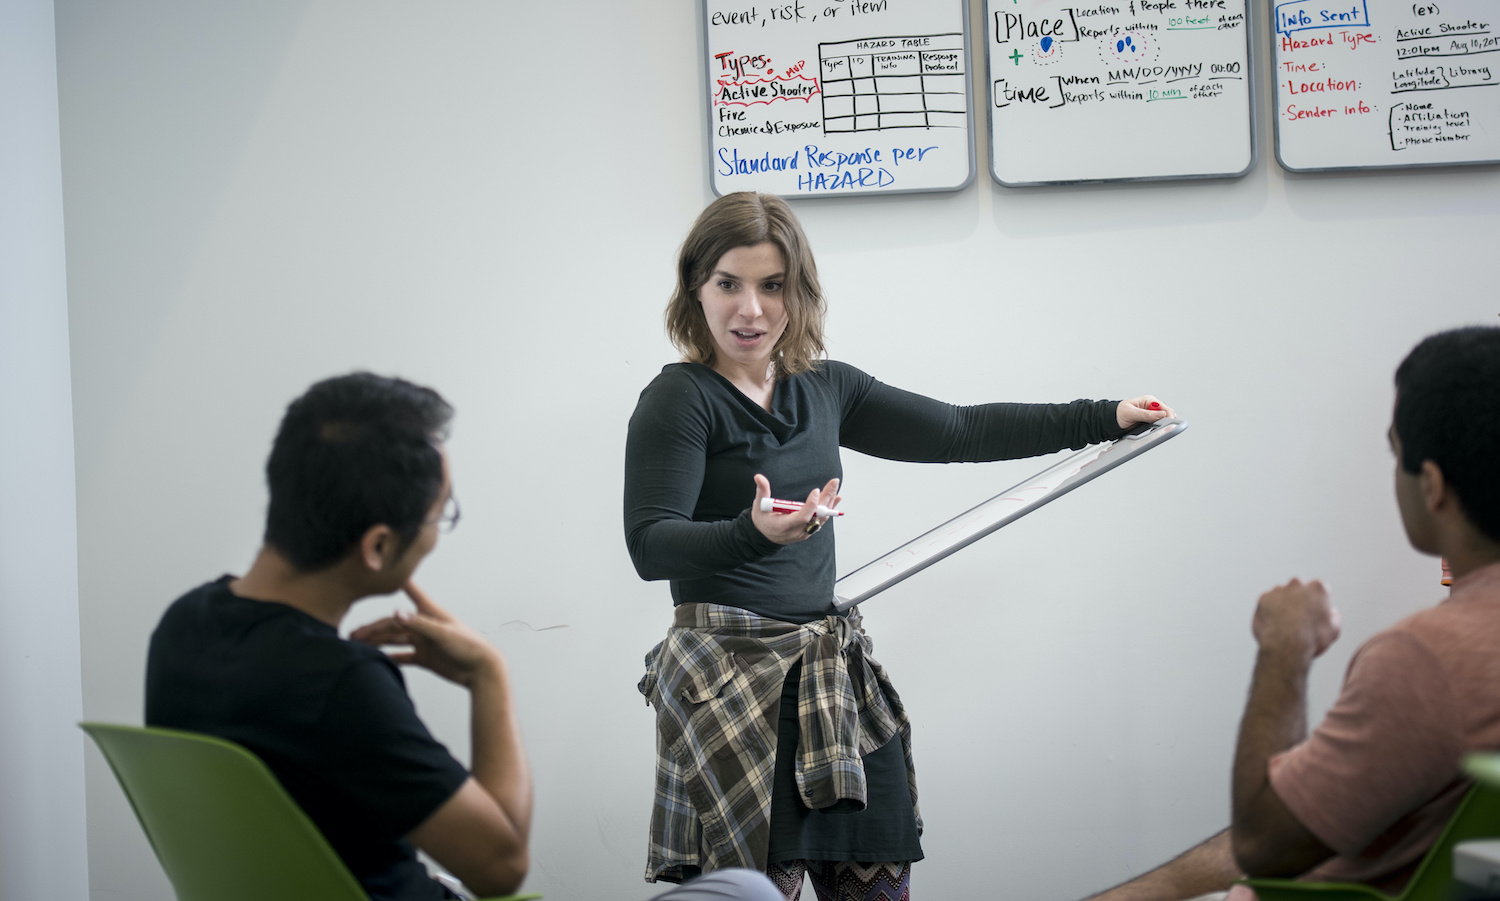 HazAdapt Founder and CEO Ginny working on a whiteboard with teammates.